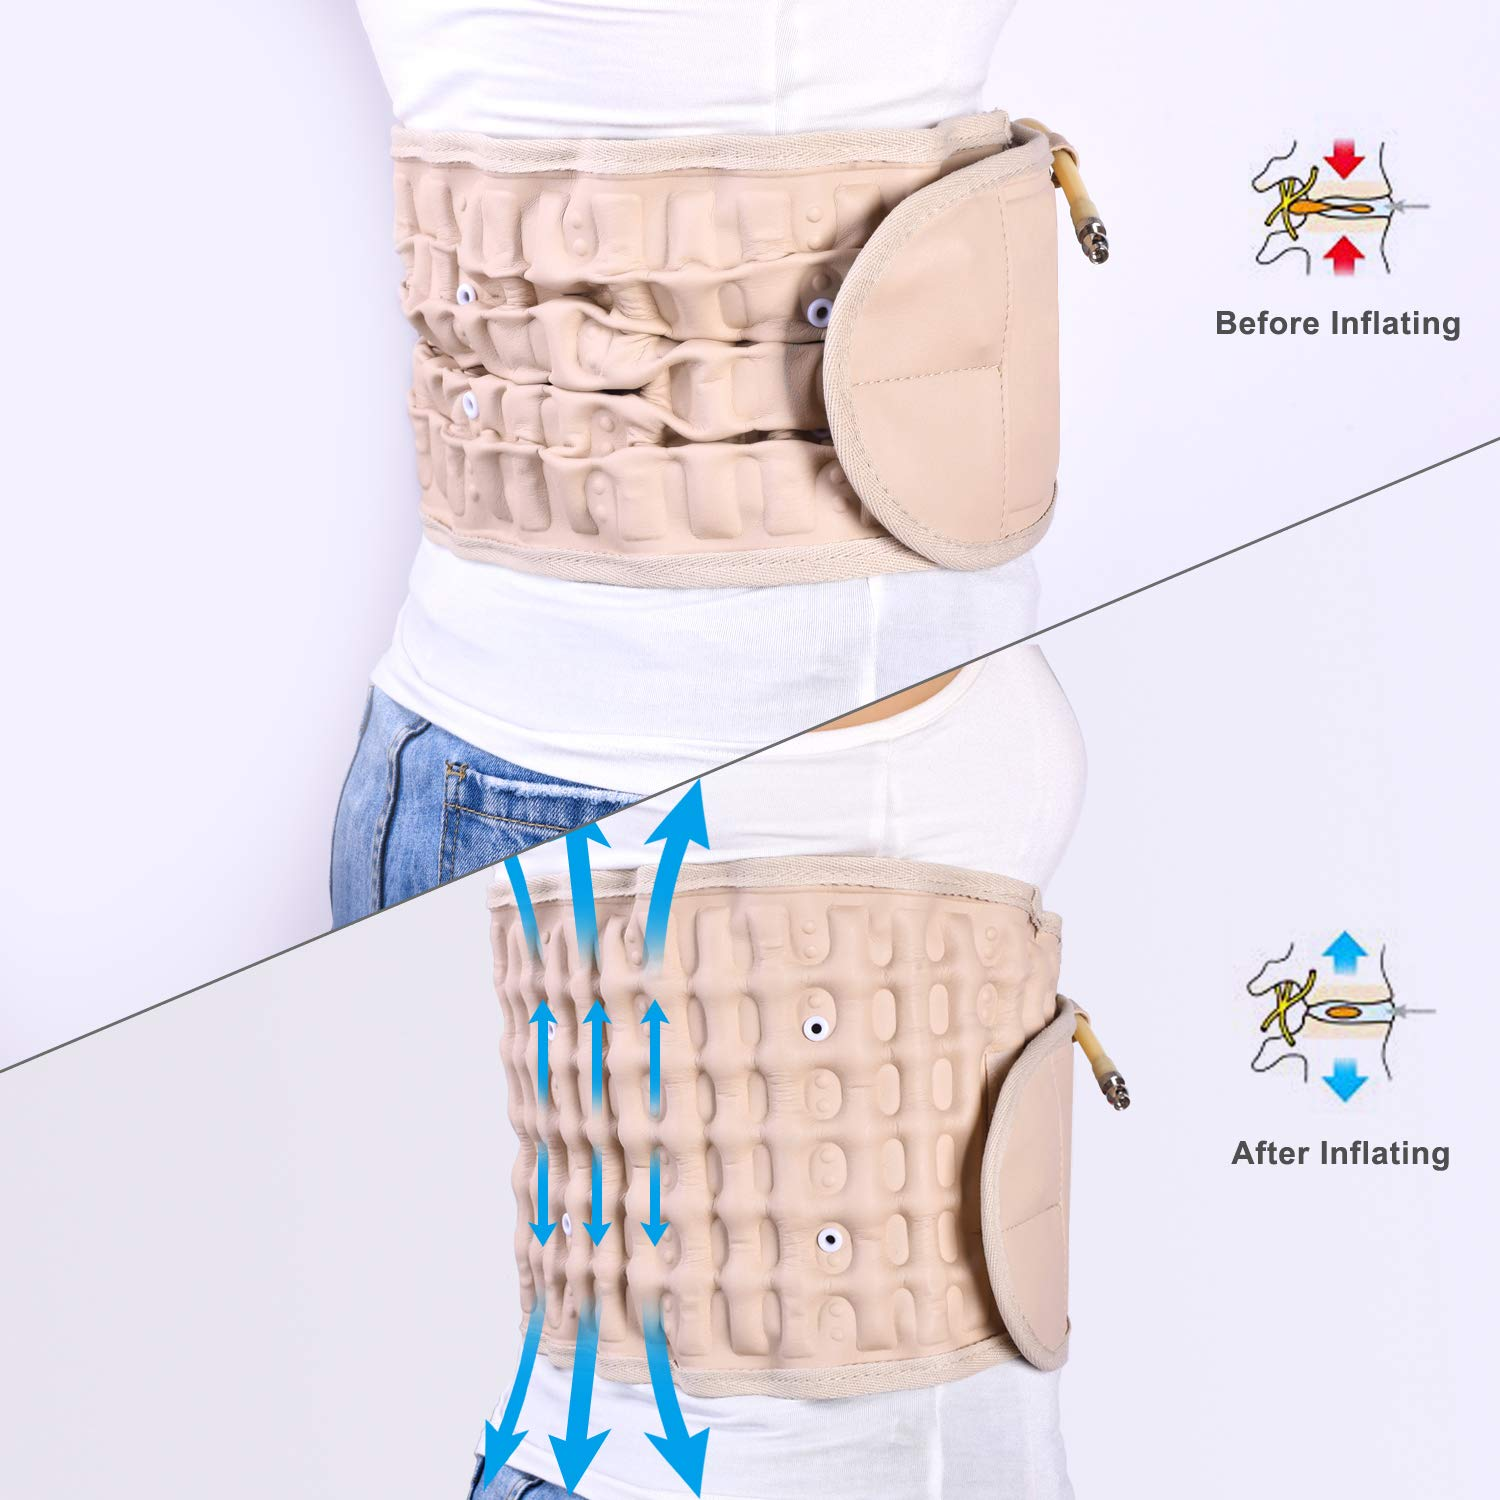 2019 Upgraded Version GZDL Decompression Back Support Belt for Men & Women, Back Brace Back Pain Lower Lumbar Support, Spinal Air Traction Belt (for 29 inches to 49 inches Waists)